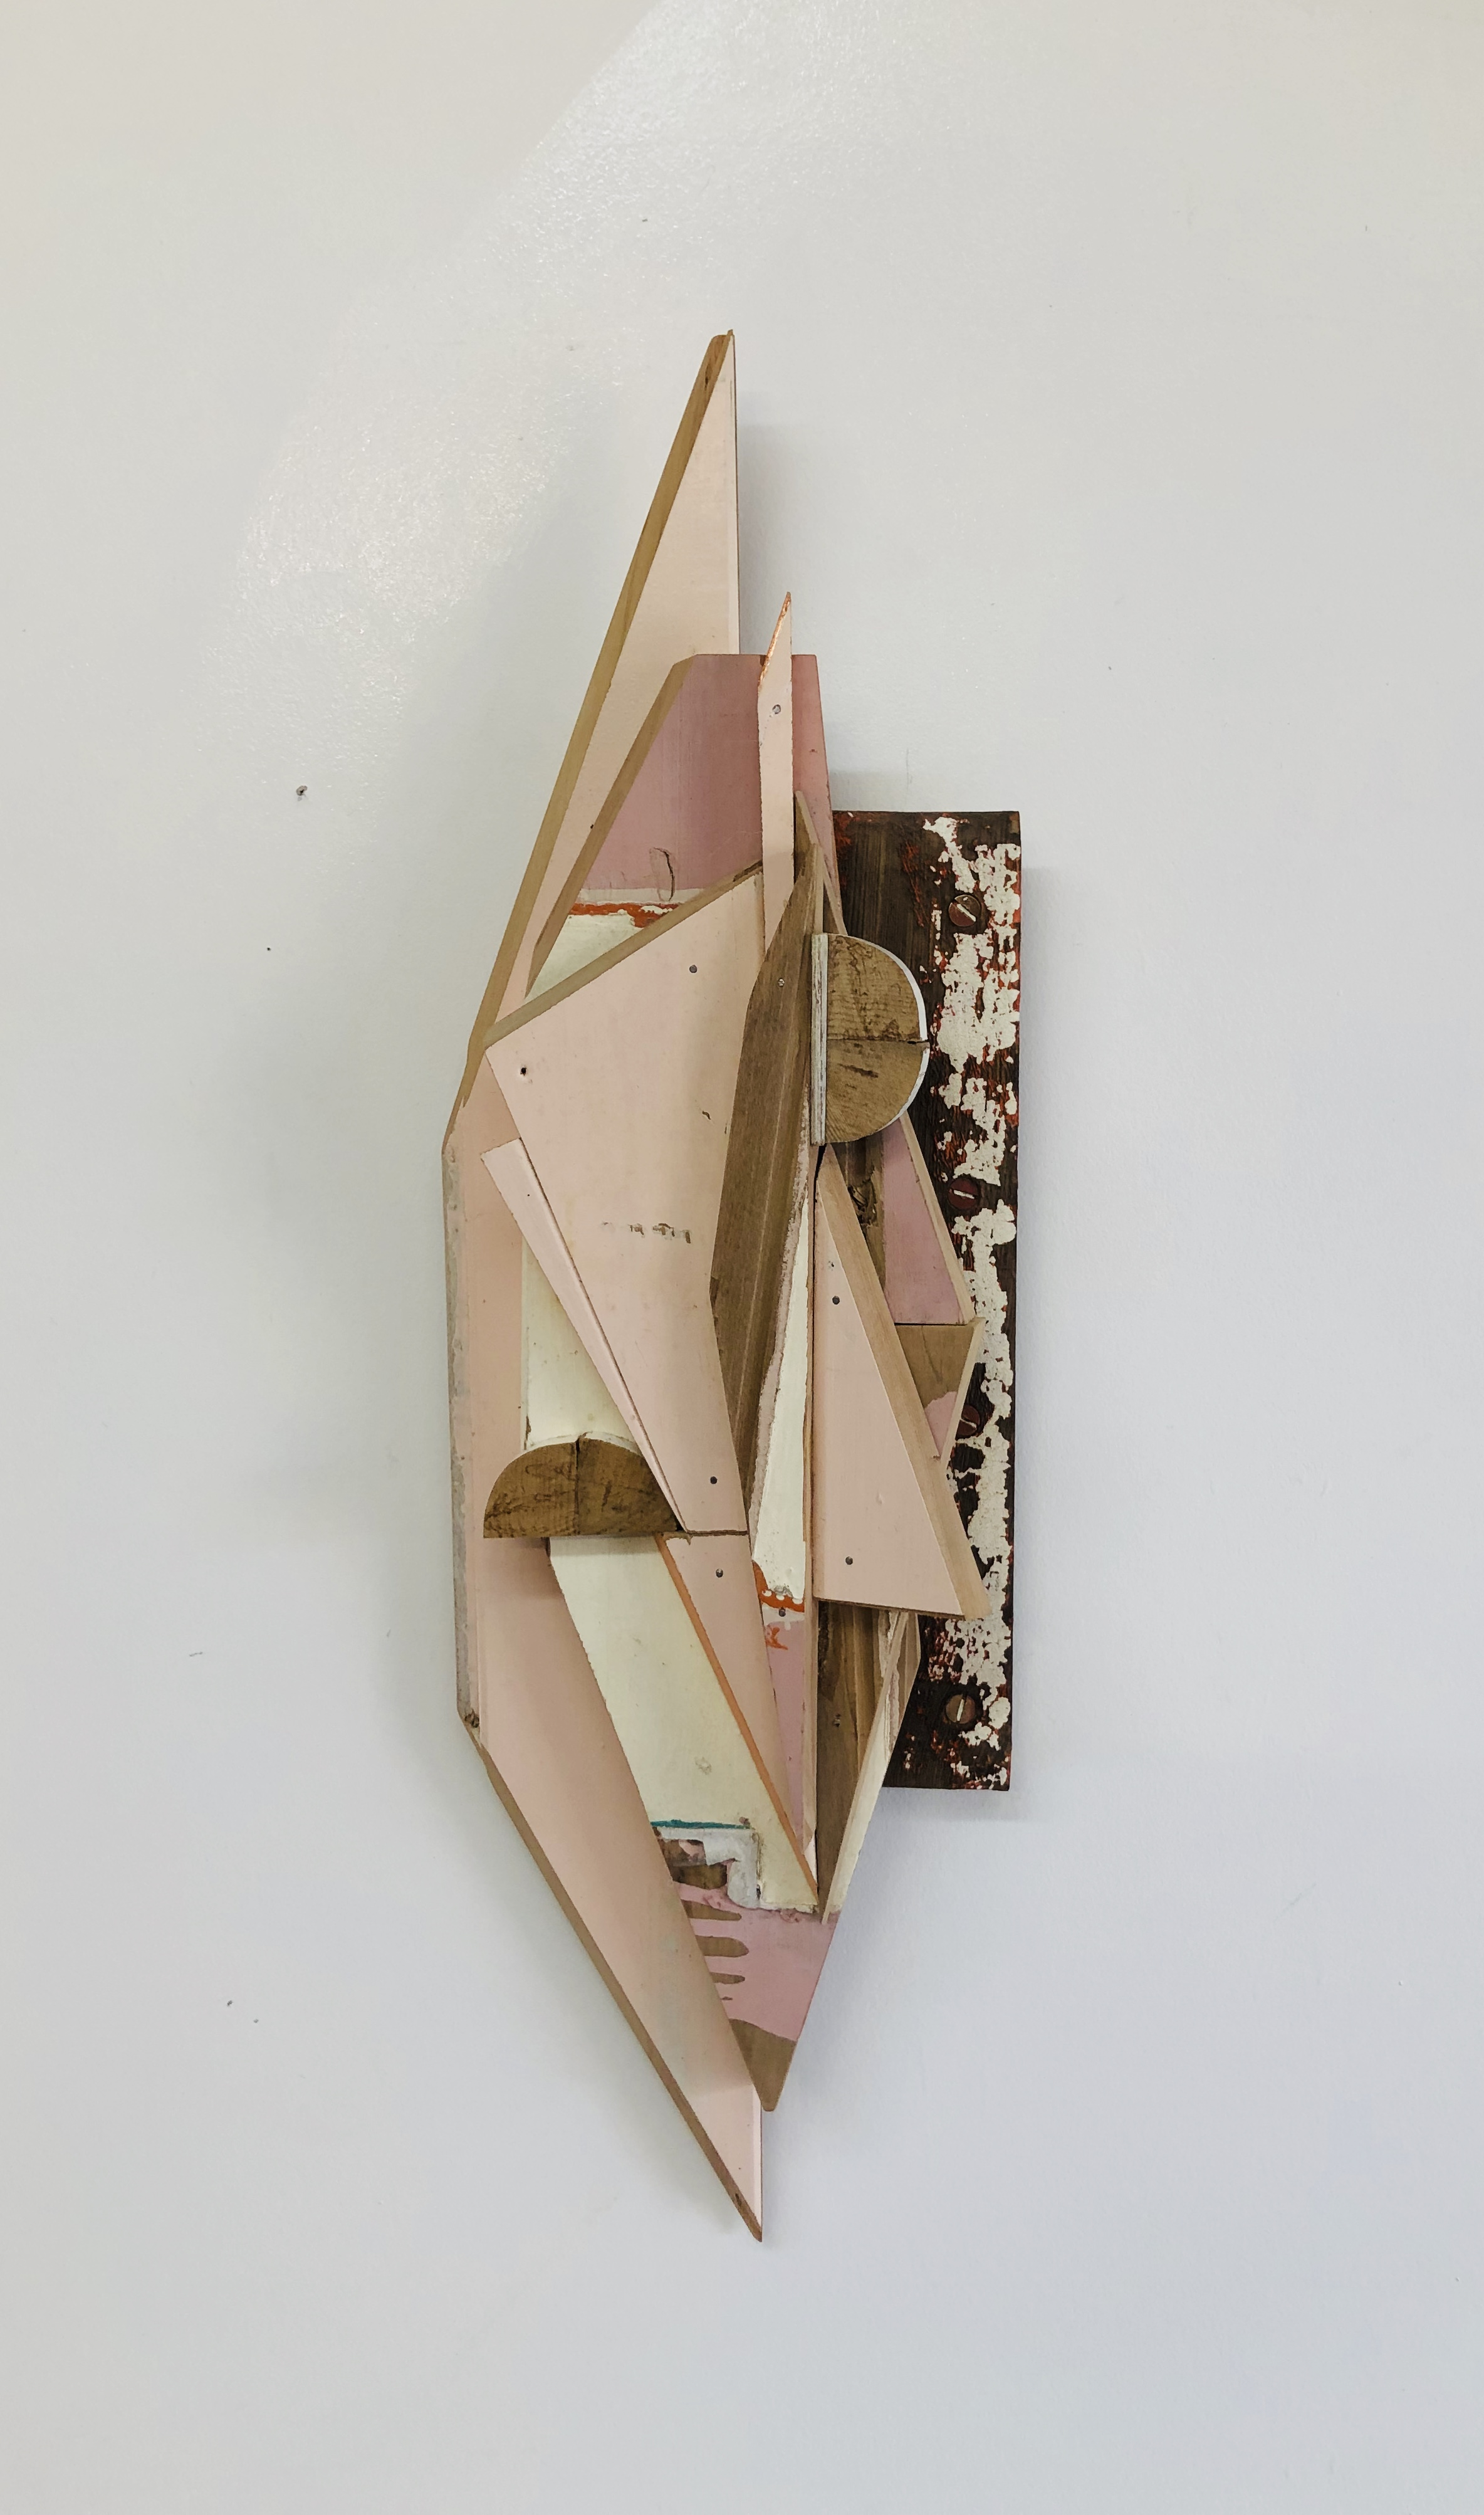 Pink Bits, salvaged timber, copper foil wall art. Measures 60 x 18 x 8 cm. Made for The Collaboration Spring Edition, 2019. wastemedia